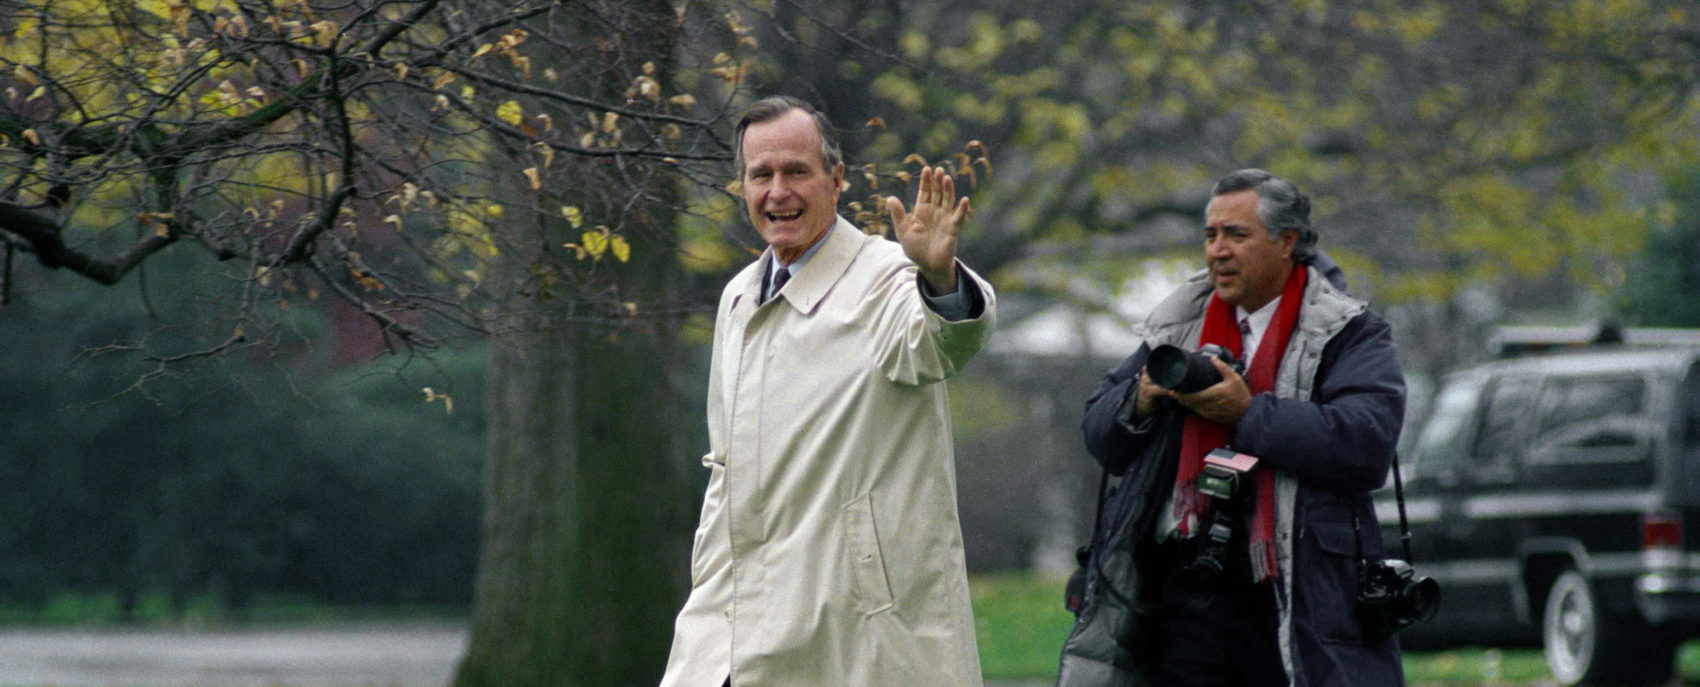 White House photographer David Valdez follows President George H.W. Bush as he departs the White House, Wednesday, Nov. 25, 1992 in Washington for Kennebunkport, Maine, for the Thanksgiving holiday. (Barry Thumma/AP)